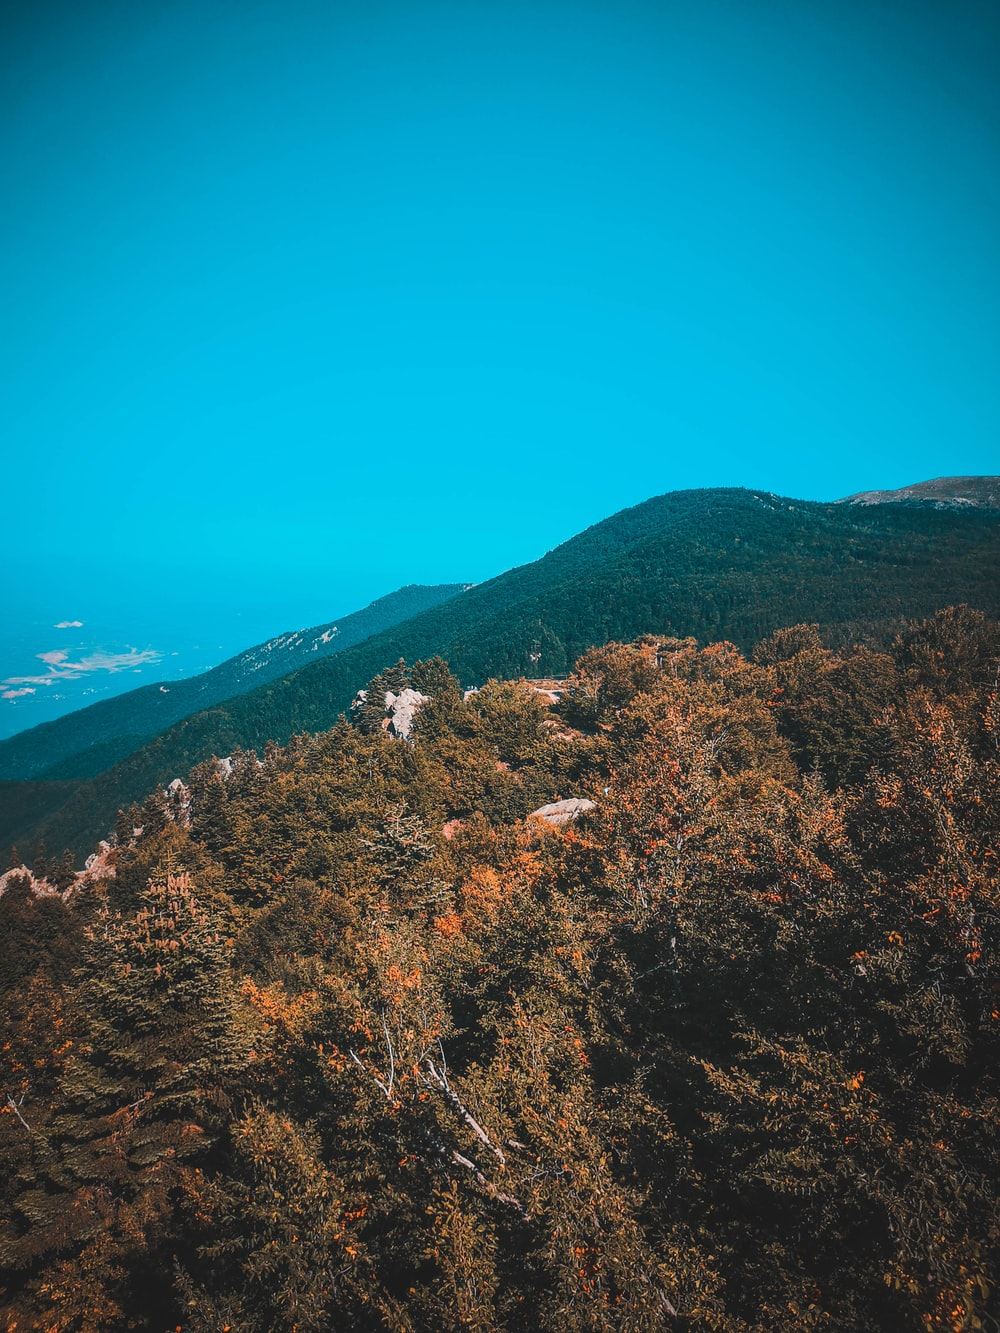 green and brown trees on mountain under blue sky during daytime